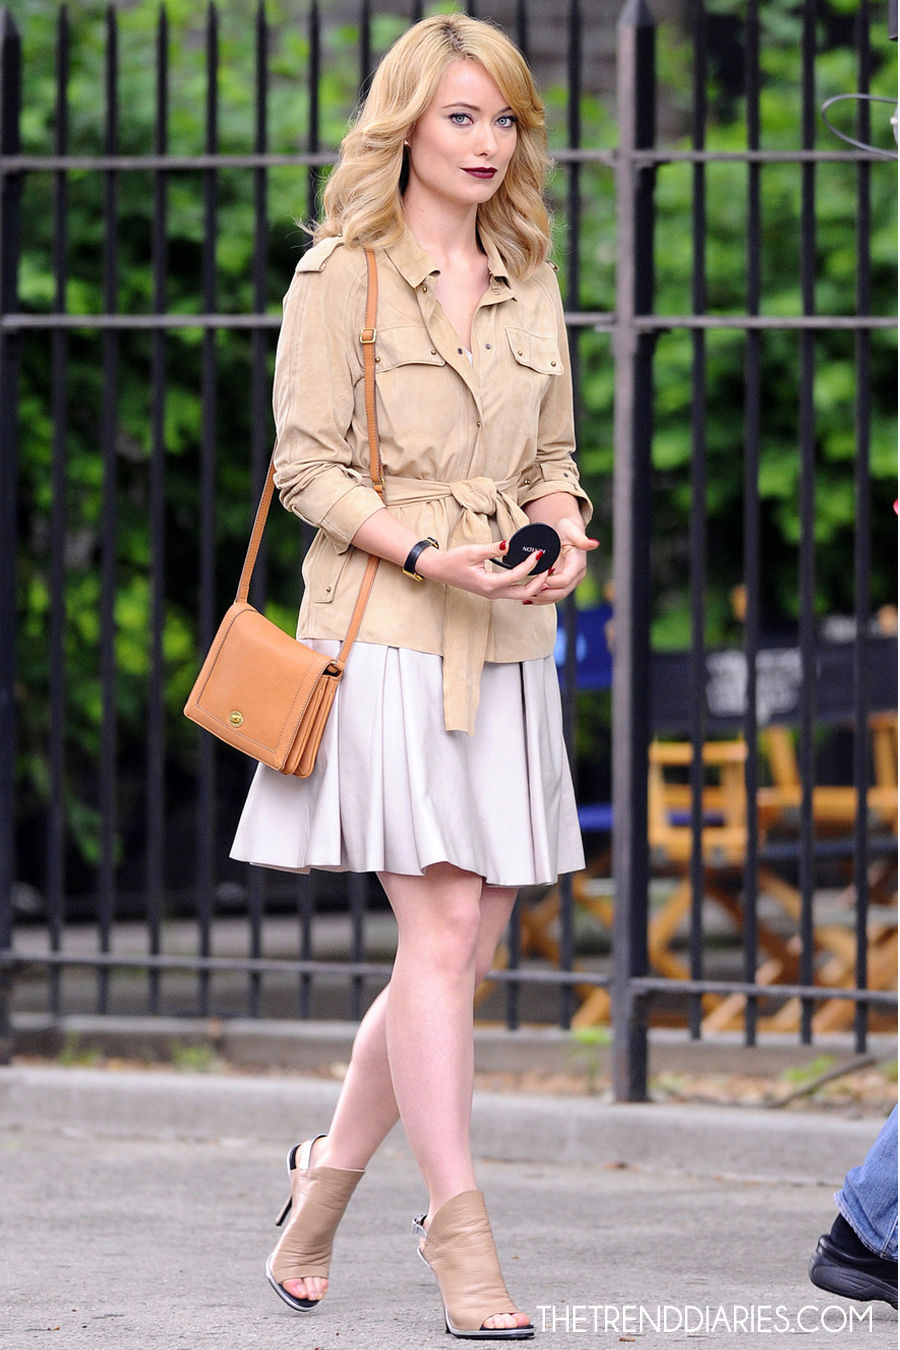 Olivia Wilde Shooting A Revlon Commercial Breakfast With Audrey Outfit Ideas What To Wear